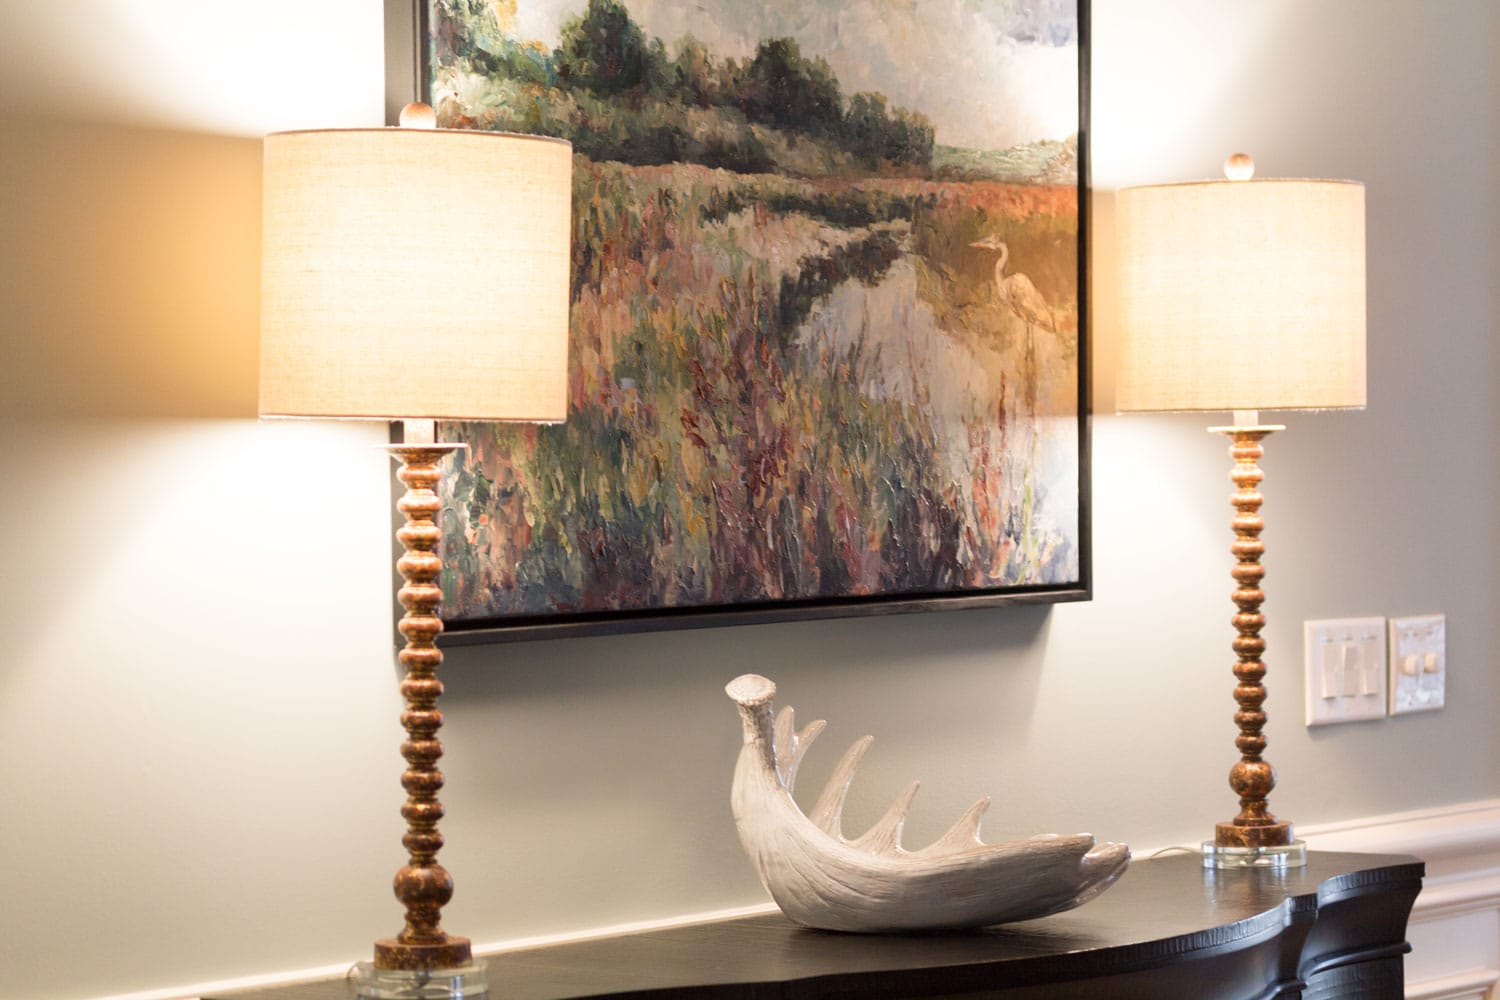 Dining area table lamp wall art in Riverland Court, Atlanta